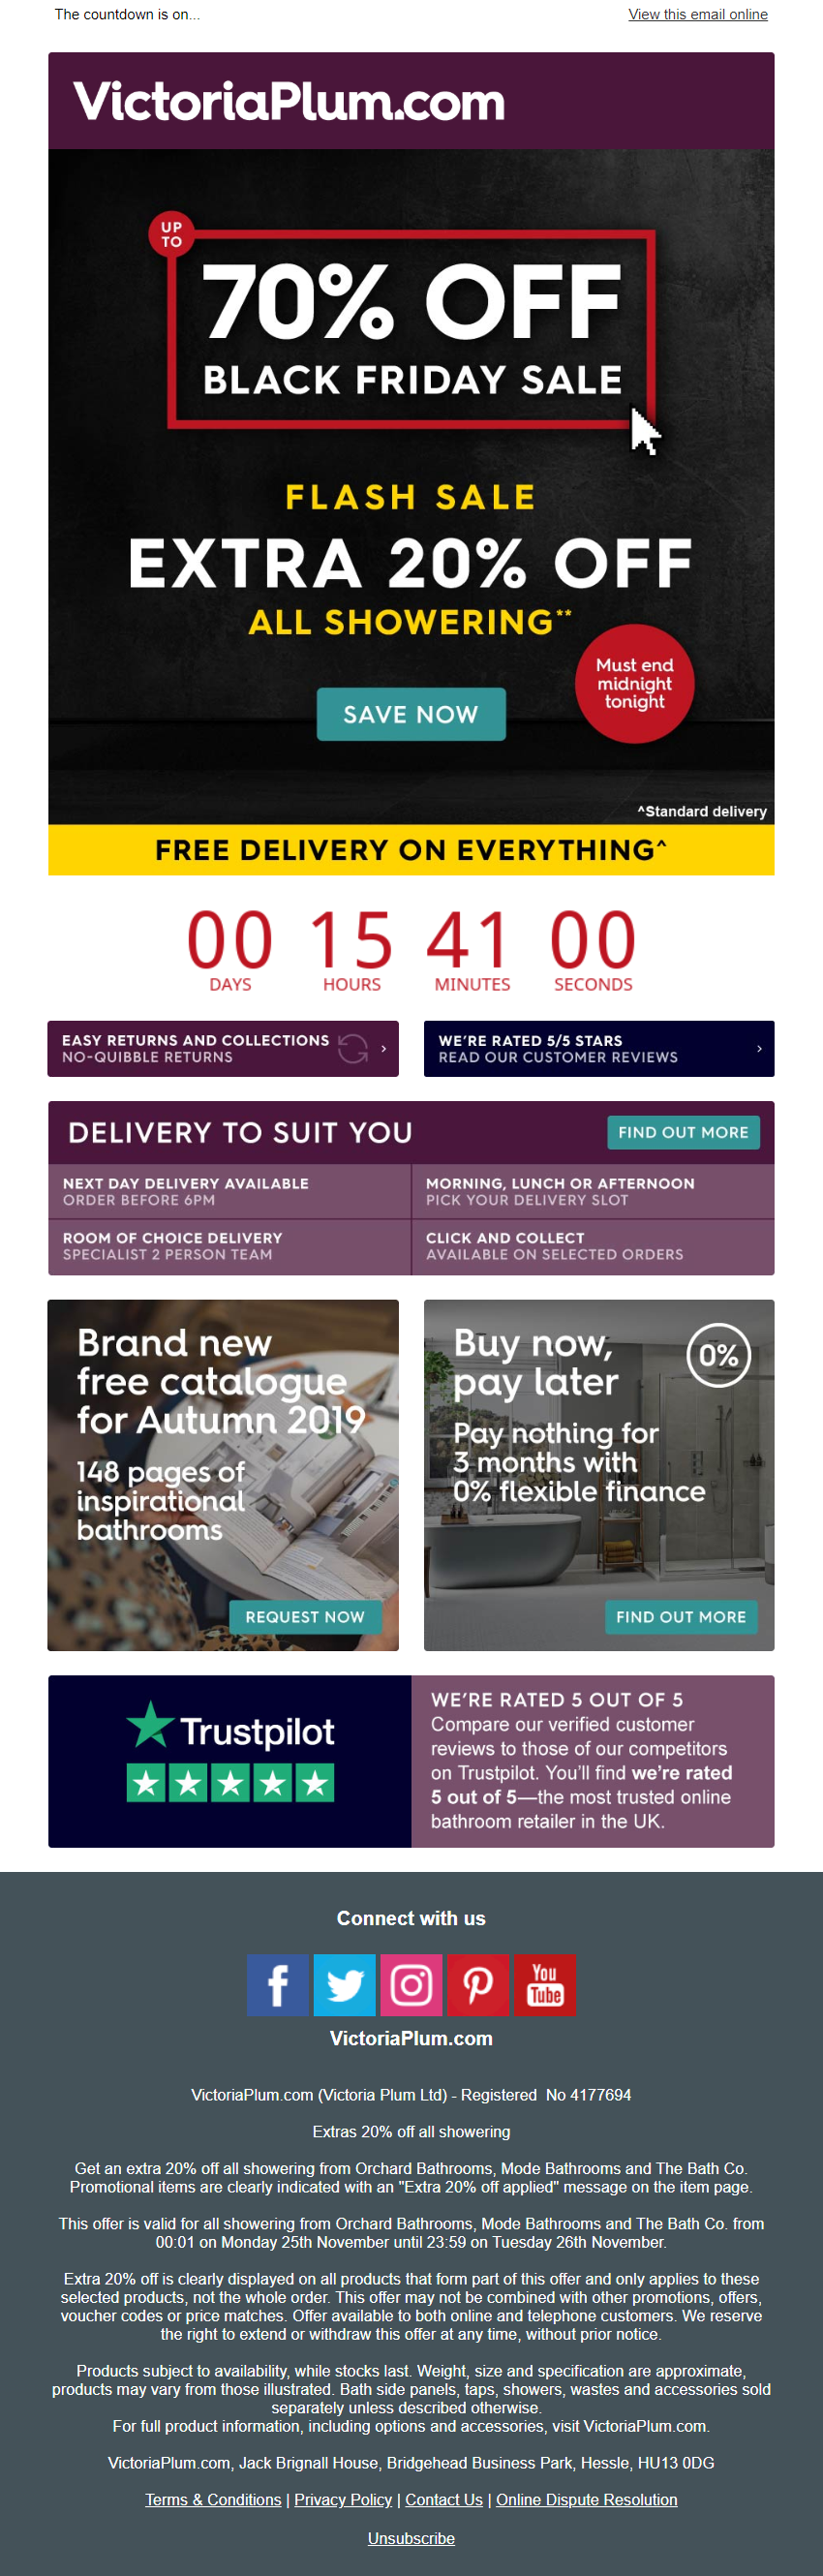 Black Friday Sale Email With Countdown Timer From Victoriaplum Com Emailmarketing Email Marketi Black Friday Email Black Friday Sale Email Black Friday Sale